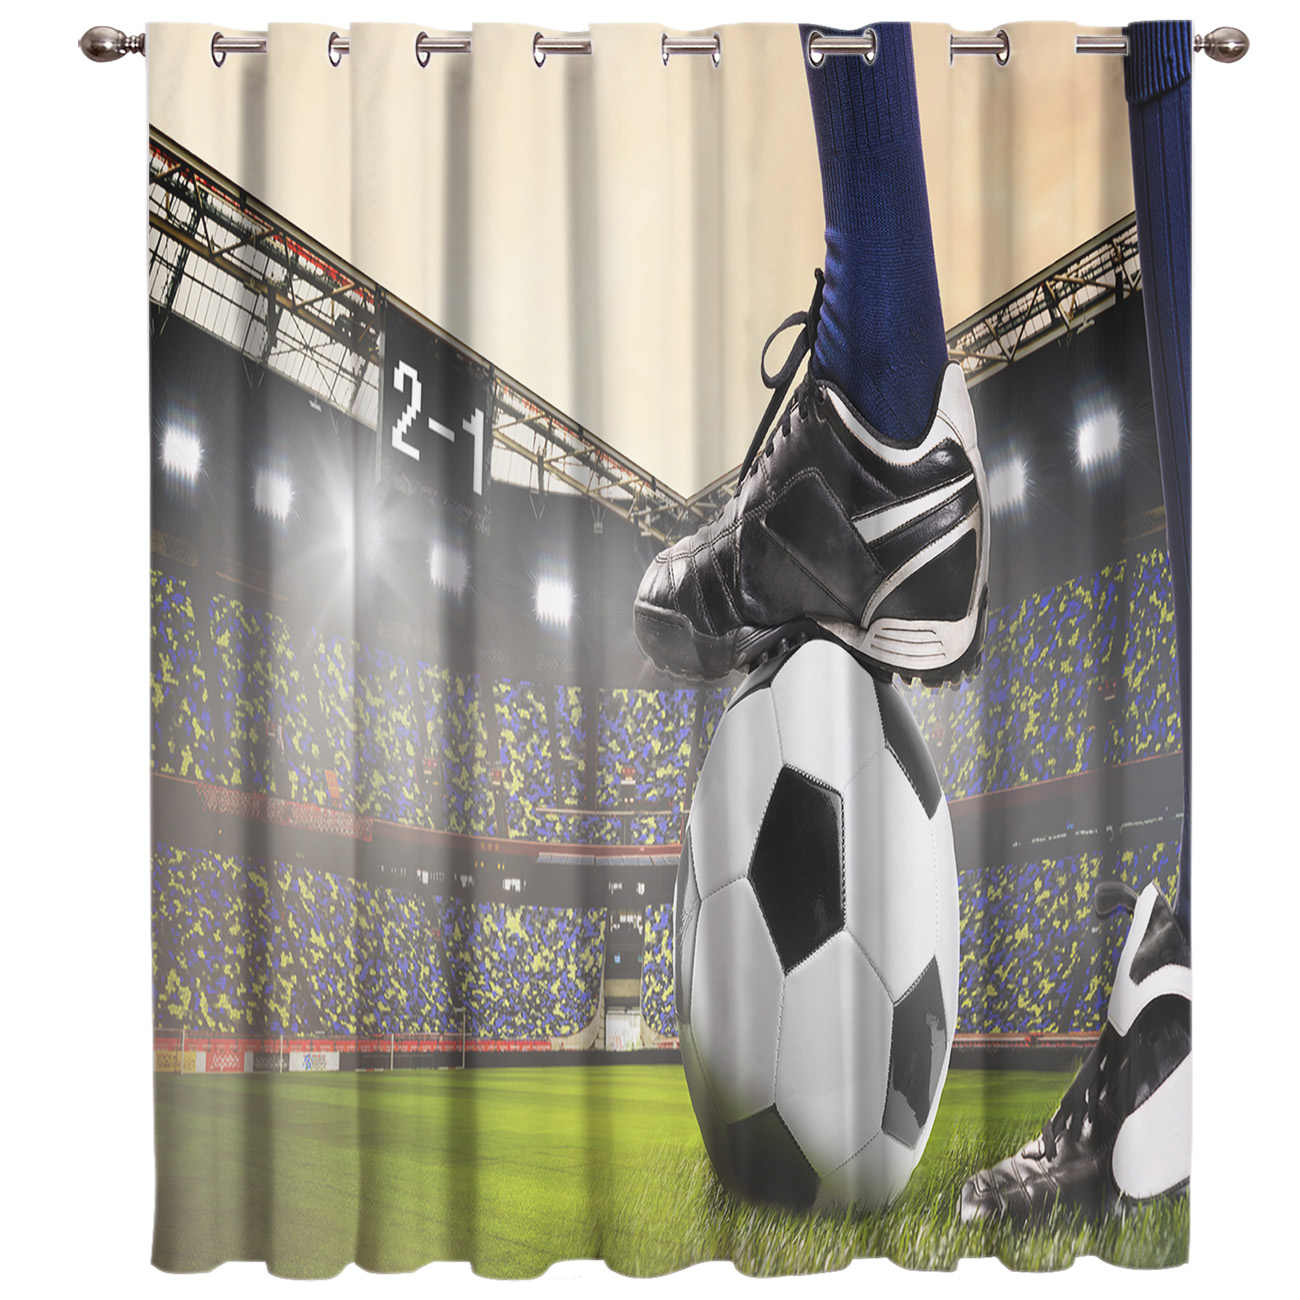 Gymnasium Soccer Curtains Balls Football Design 3D Window Curtains for Living Room Bedroom Kitchen Cortinas Para Sala De Estar